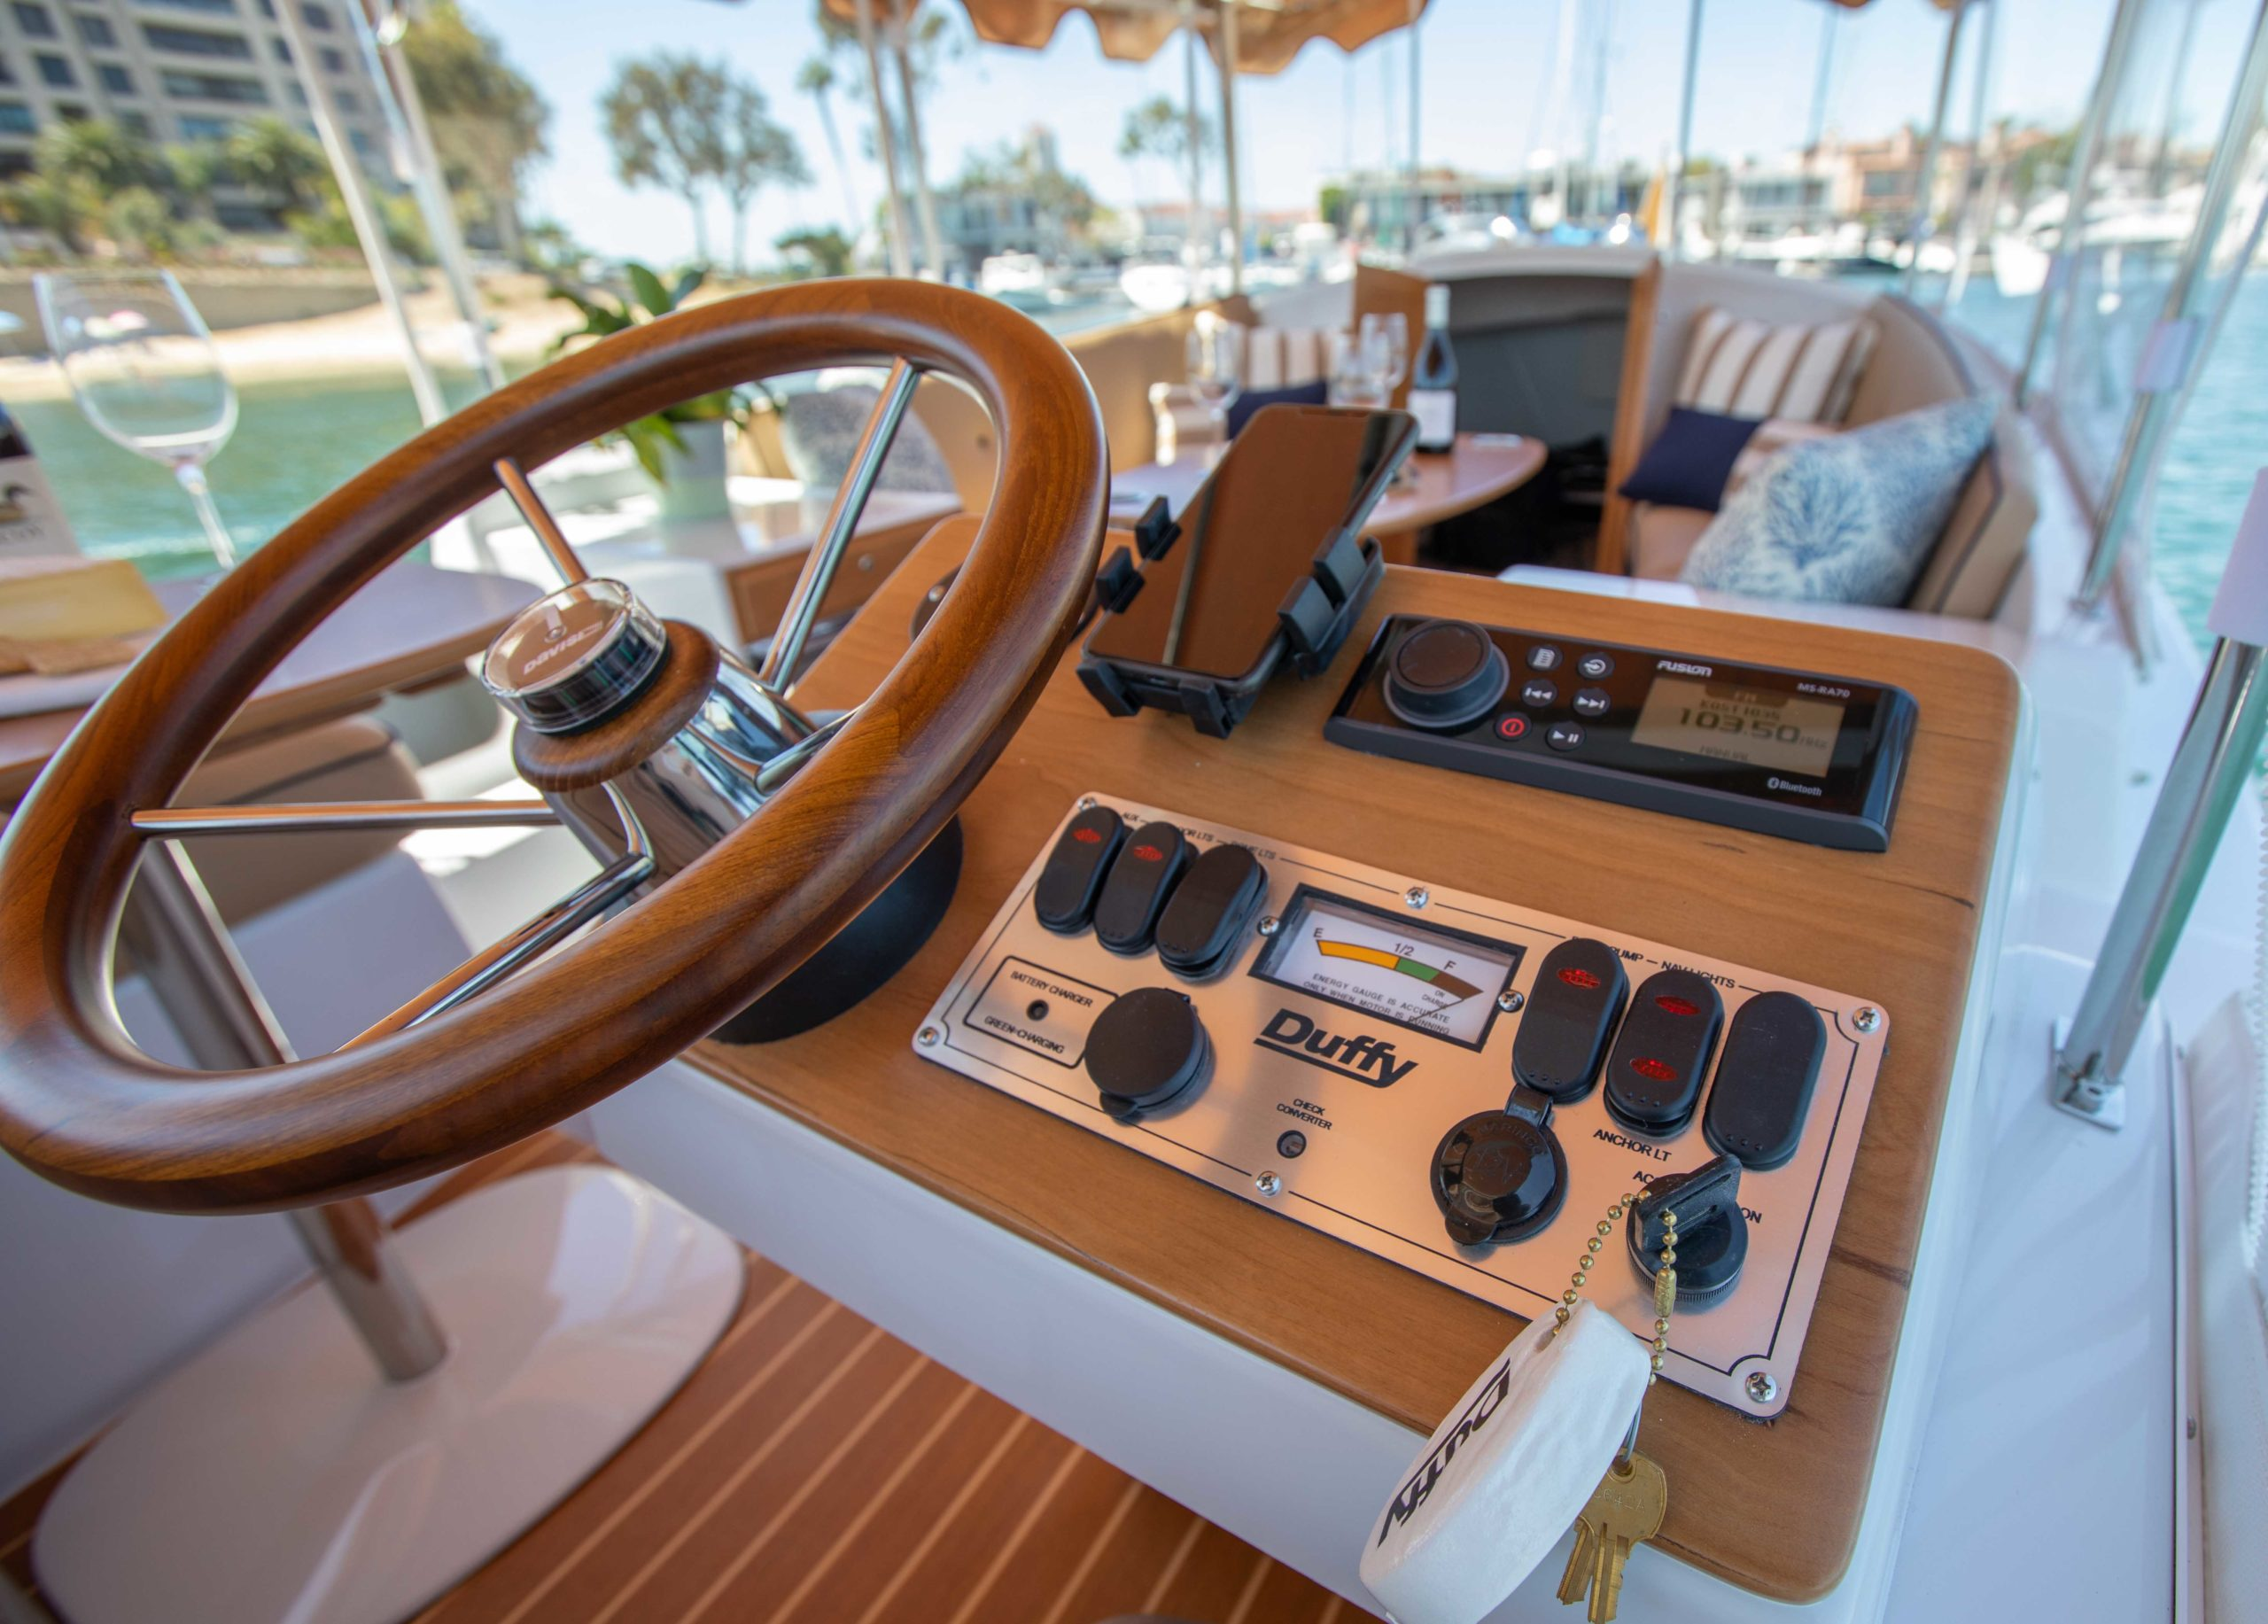 Duffy-Electric-Boats-22-Cuddy-Cabin-Interior-8